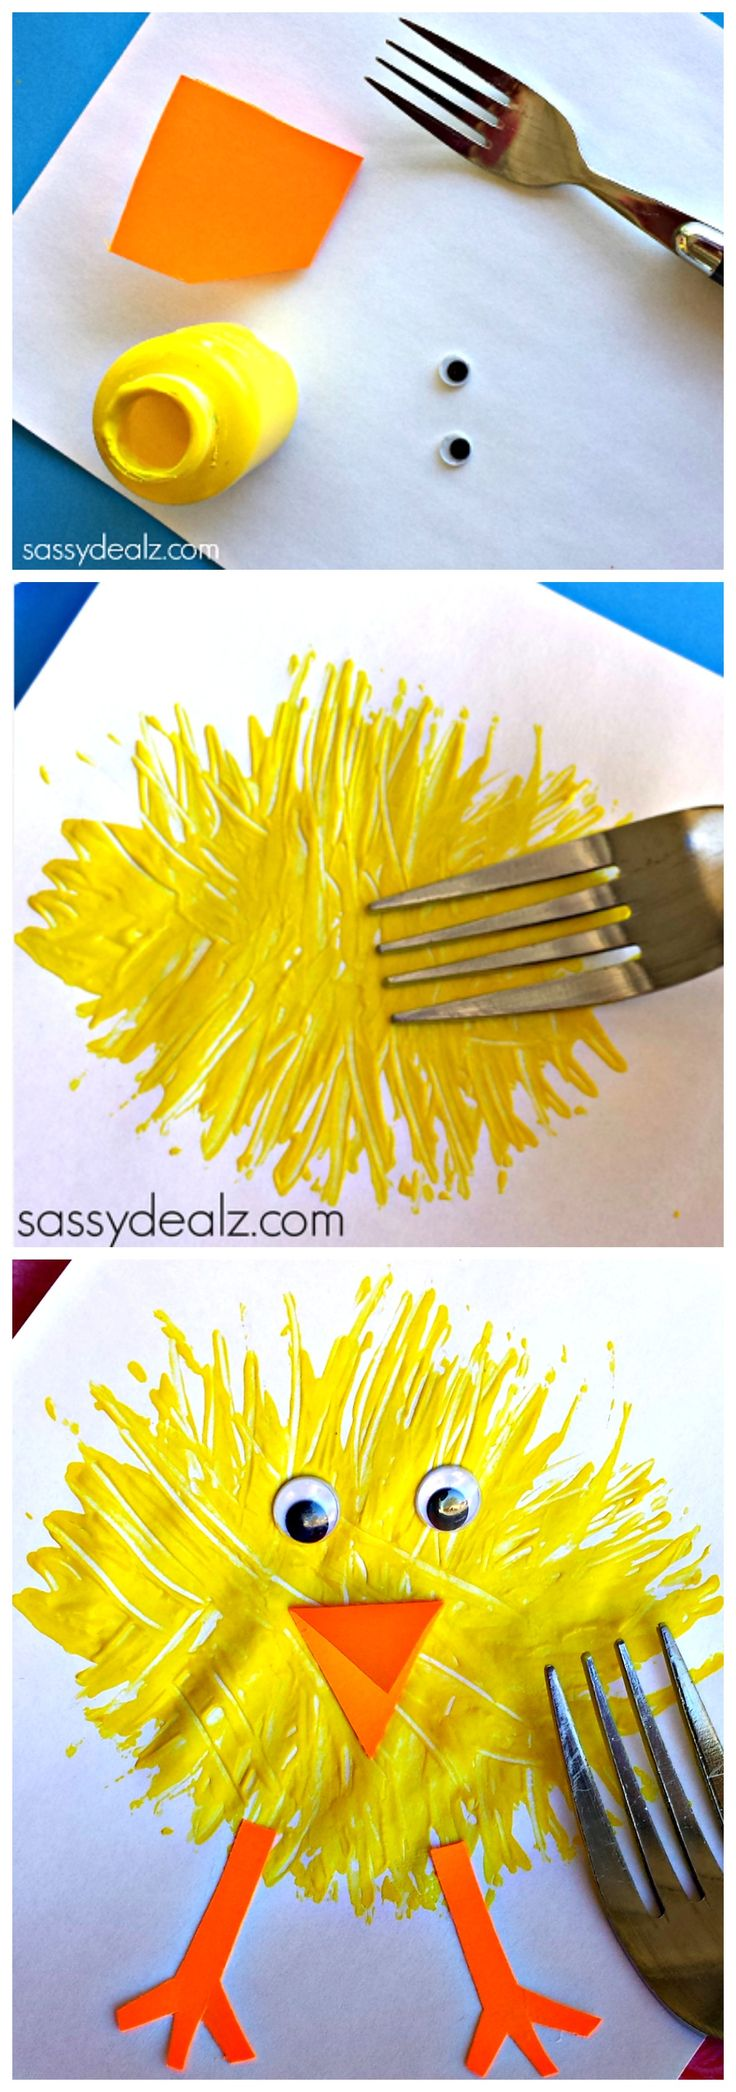 Make a Chick Craft using a fork and paint! Such a cute craft for kids! #Easter idea.  -Repinned by Totetude.com